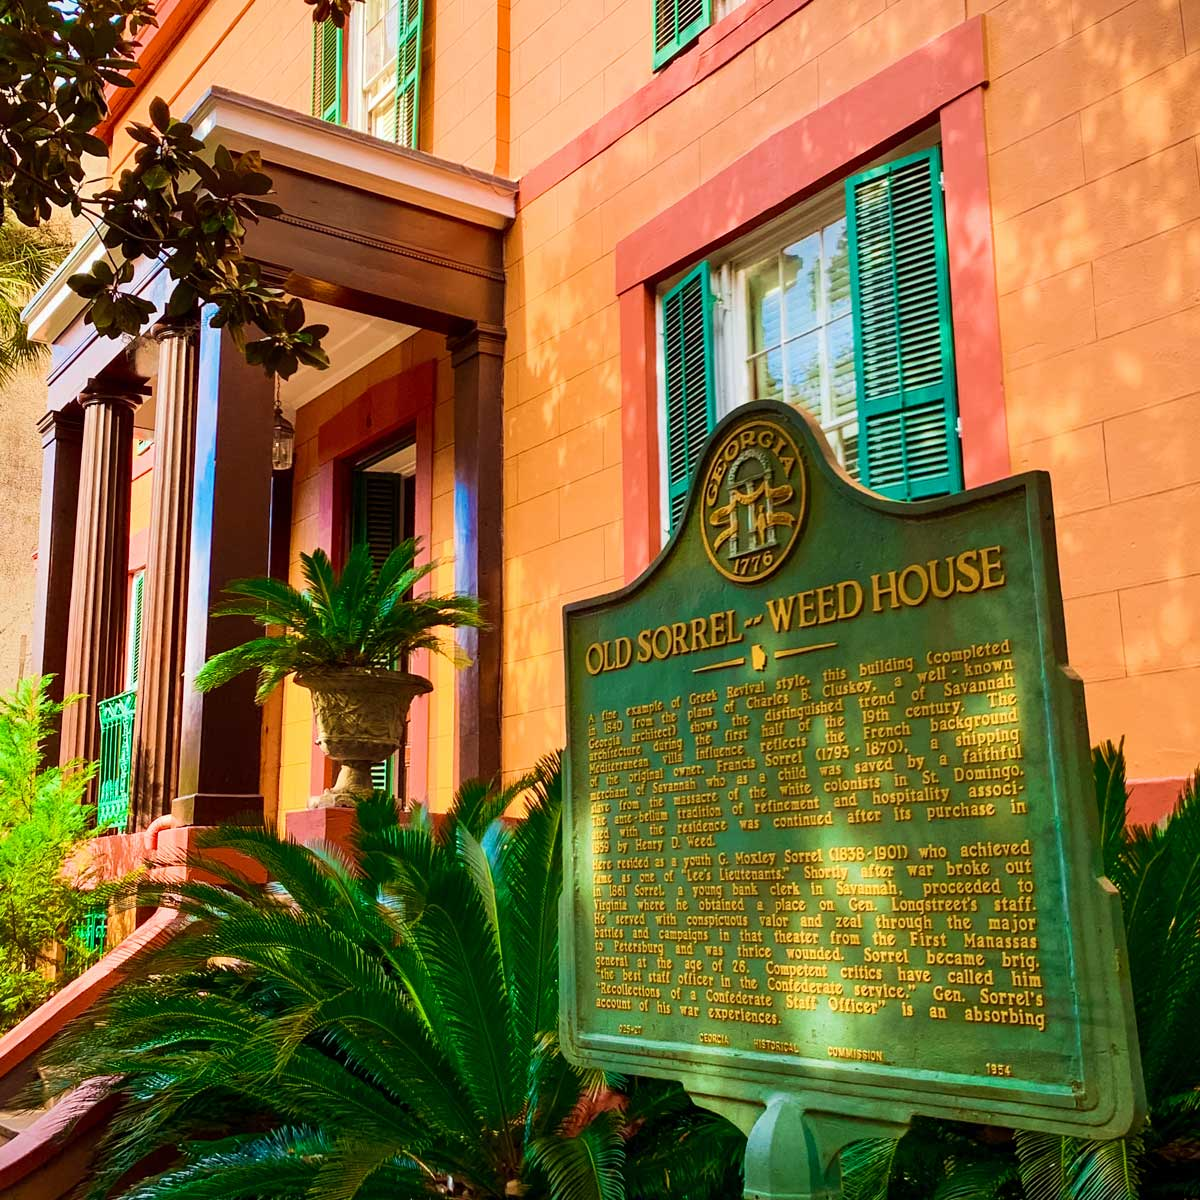 The colorful entry of the Old Sorrel-Weed House, just one of many incredible things to do in Savannah, Georgia